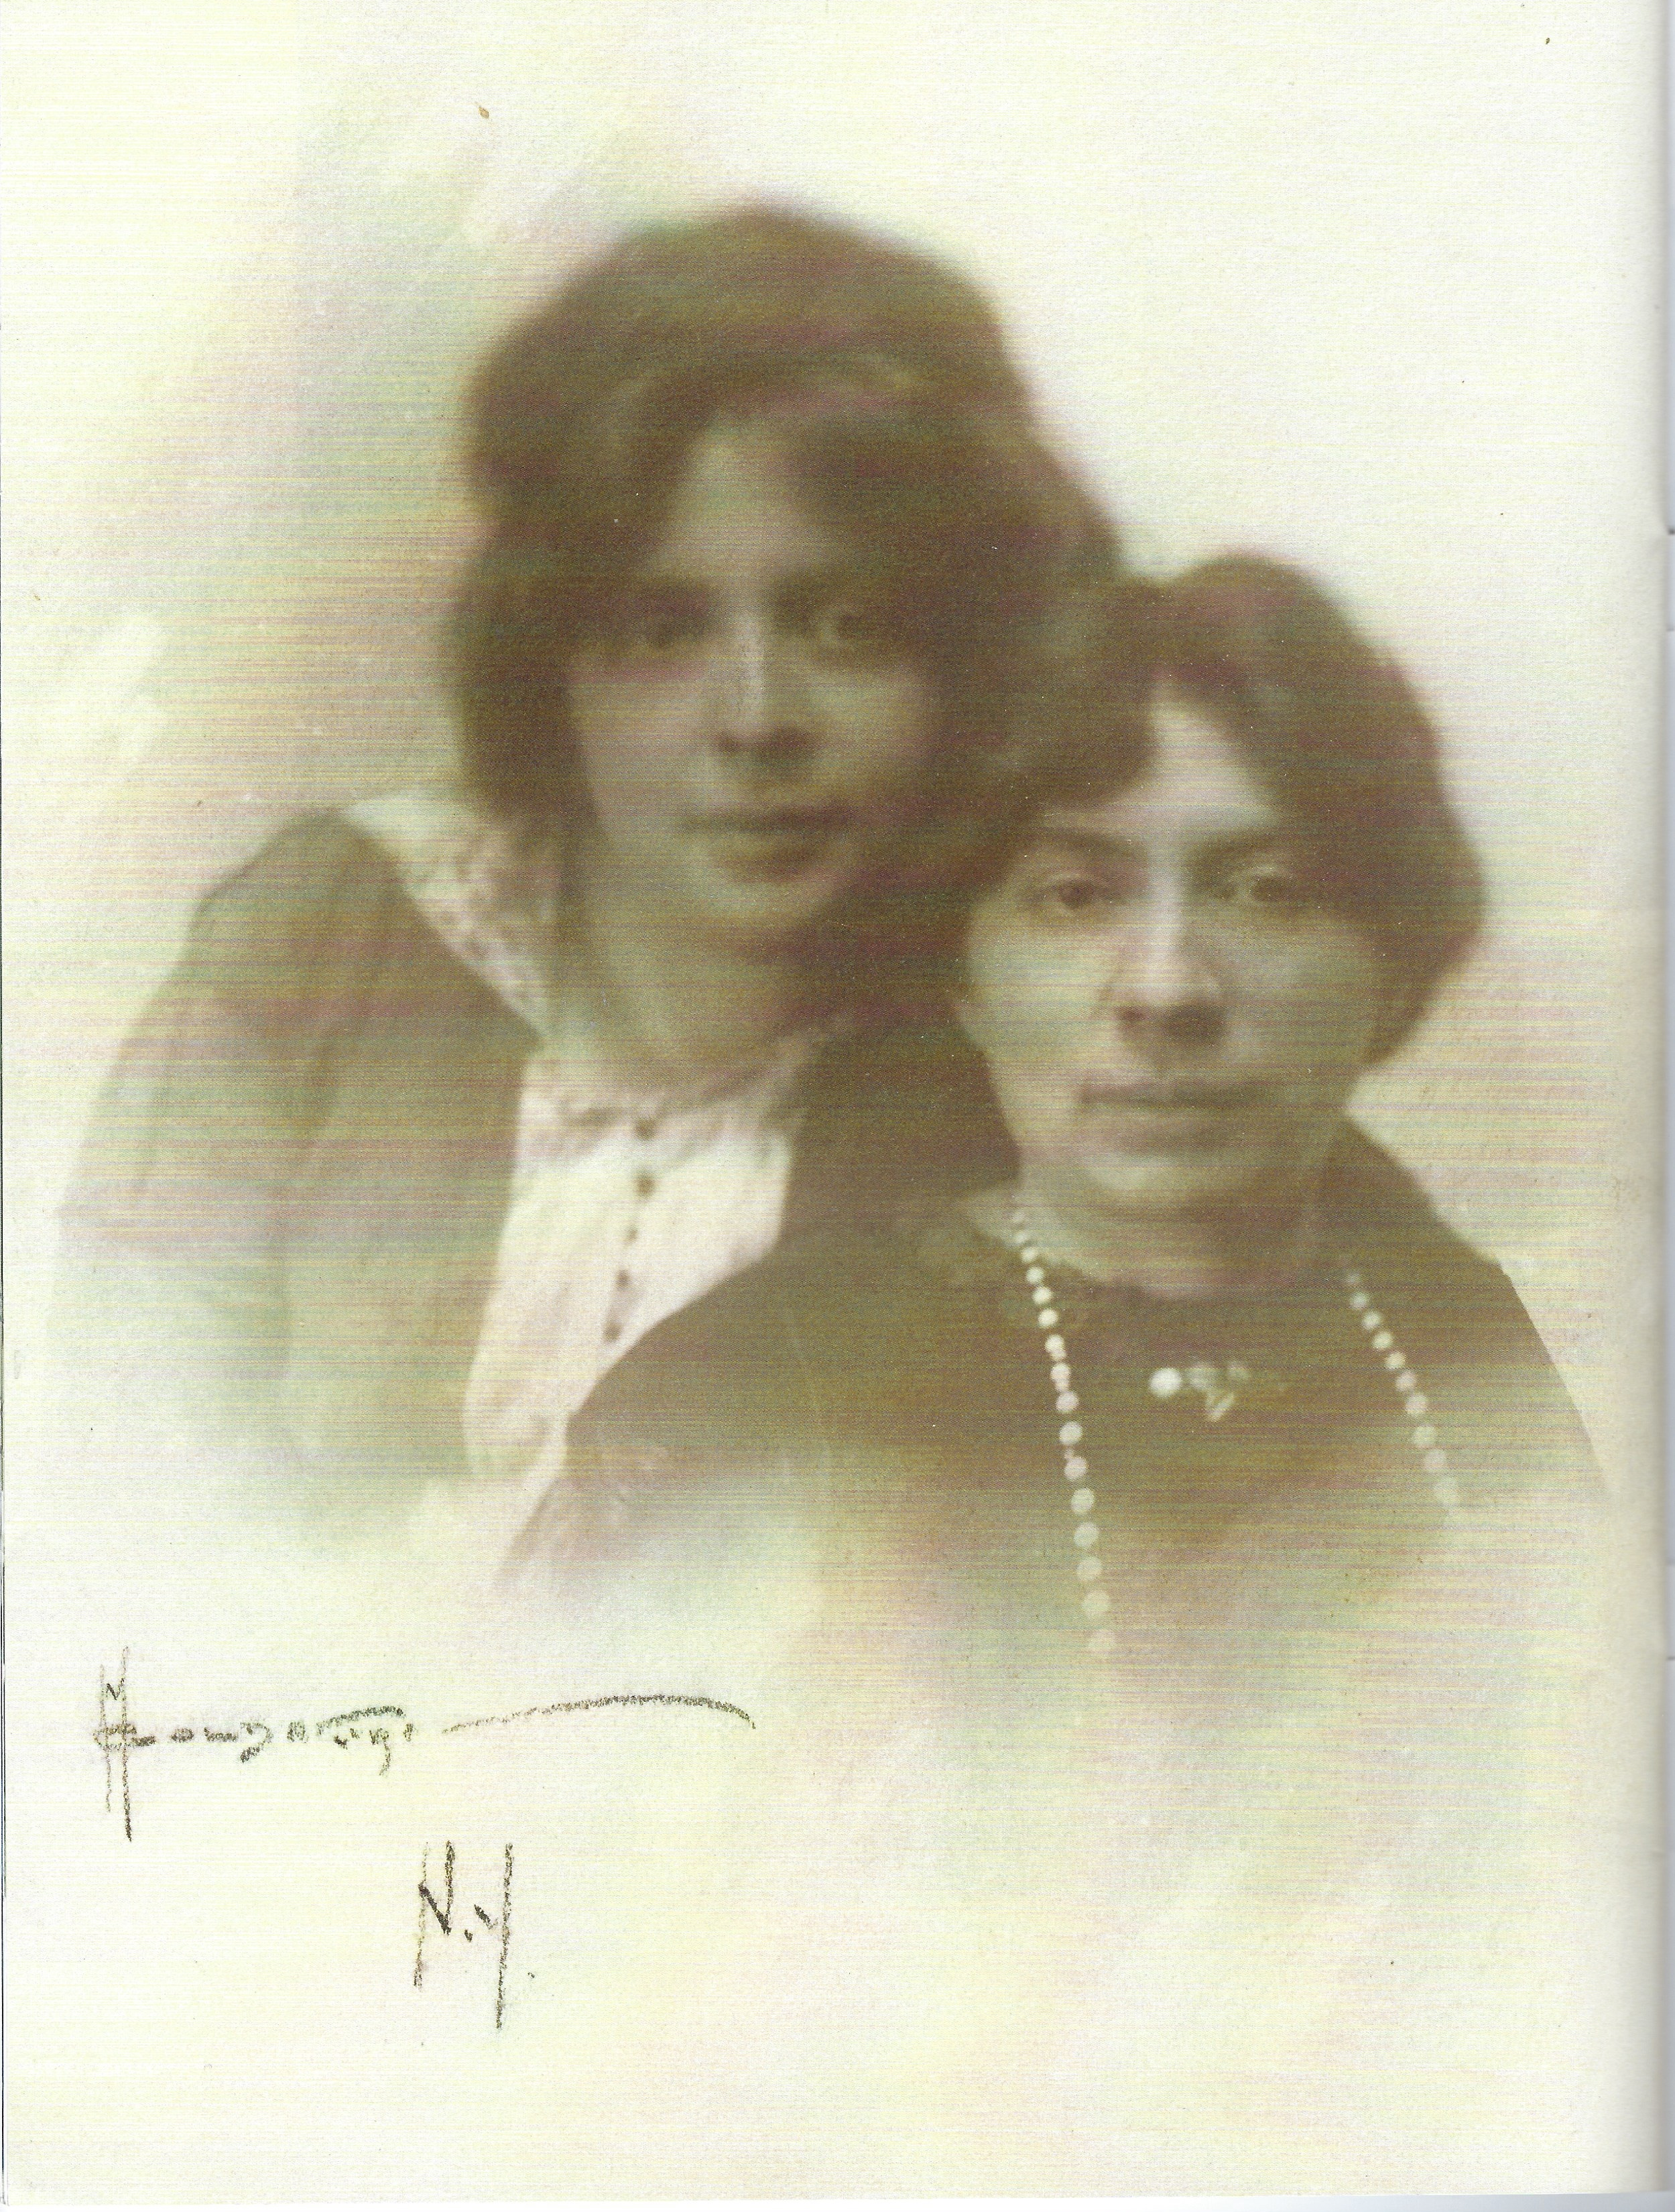 """<p>Miriam Shomer Zunser (left) and her sister Rose Shomer Bachelis. Source: <em>Pakn Treger</em> <span class=""""numbers"""">82</span> (Fall <sup class=""""numerator""""><span class=""""numbers"""">2020</span></sup>⁄<sub class=""""denominator""""><span class=""""numbers"""">5781</span></sub>), from the collections of the Museum of the City of New&nbsp;York.</p>"""